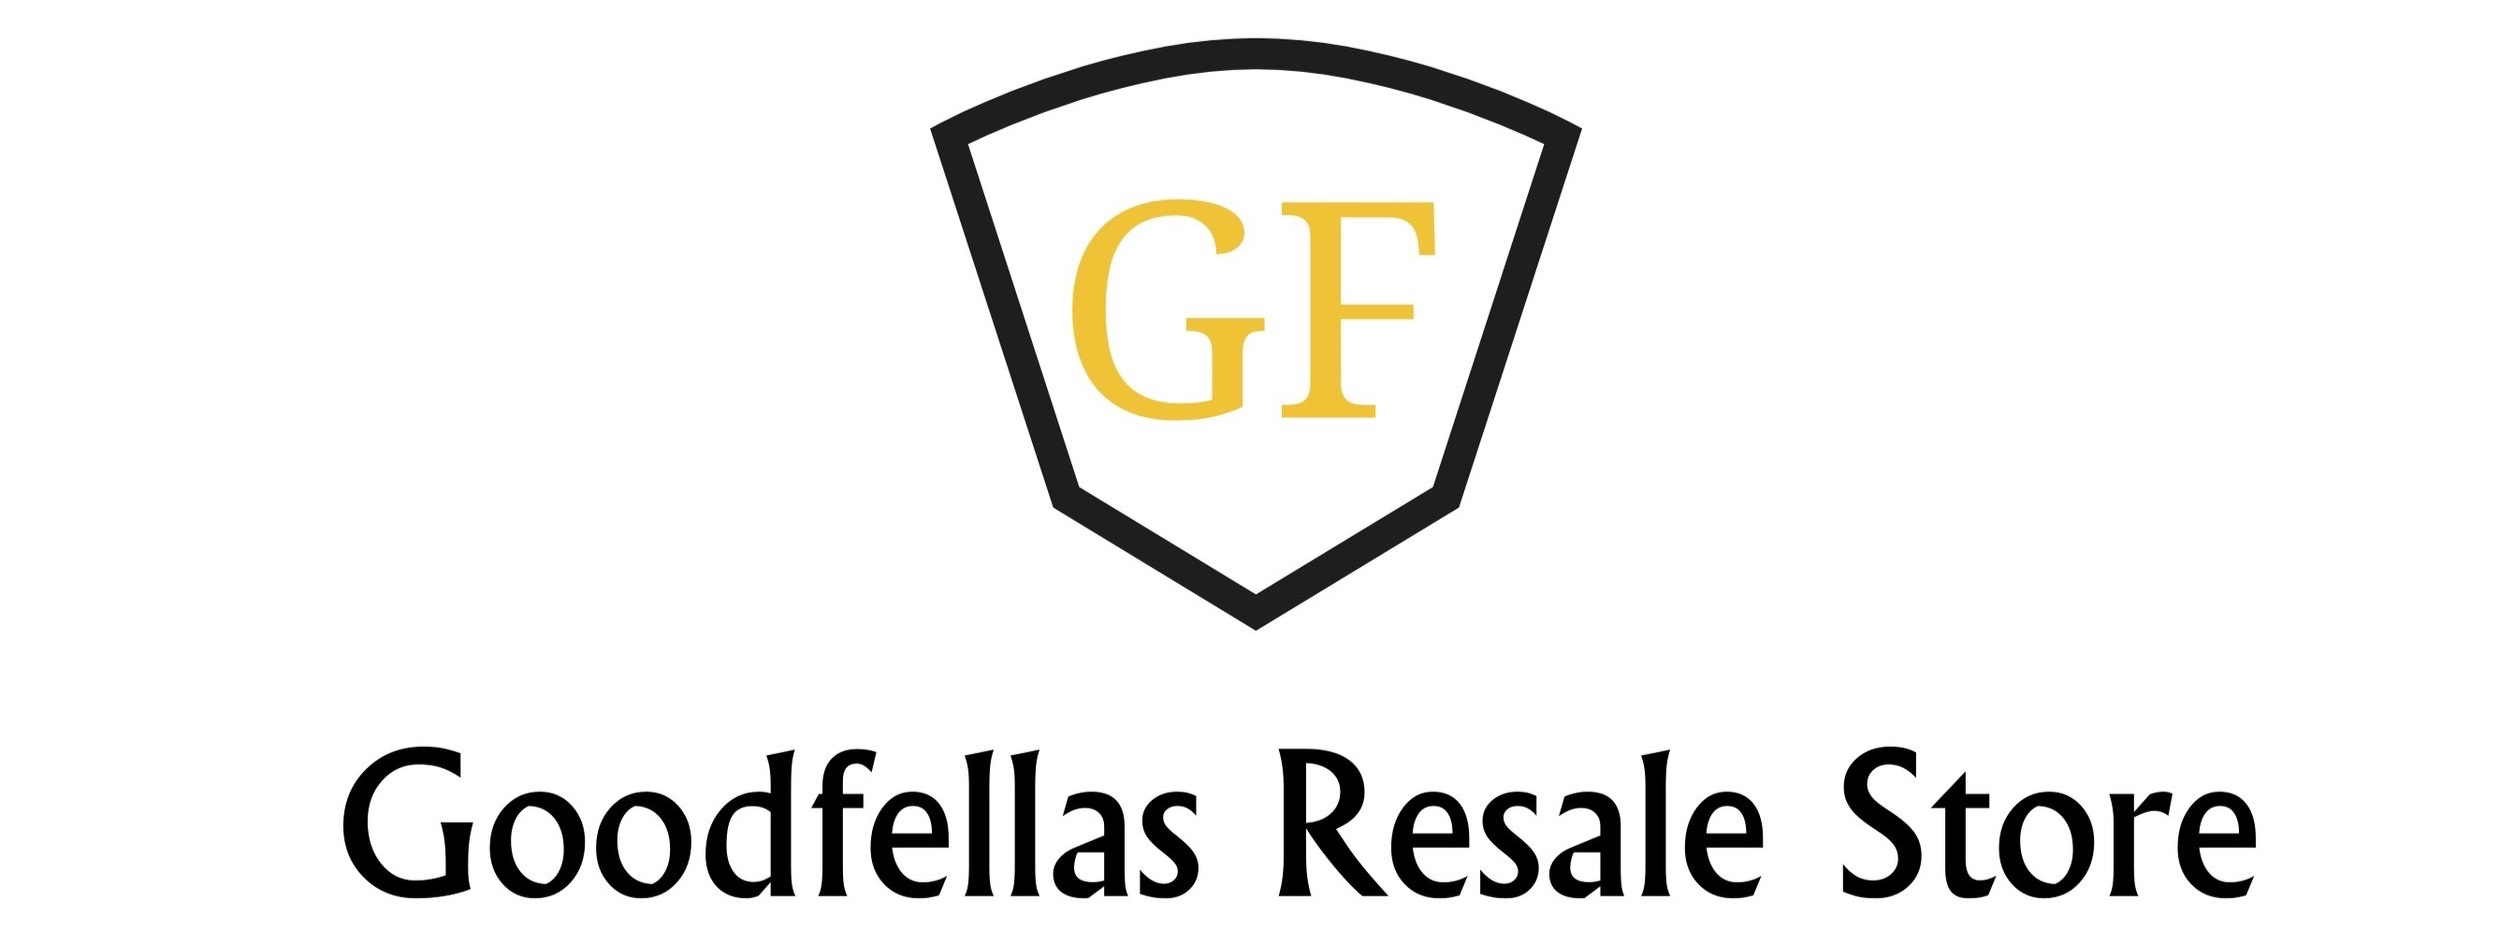 Goodfellas Clothing Resale